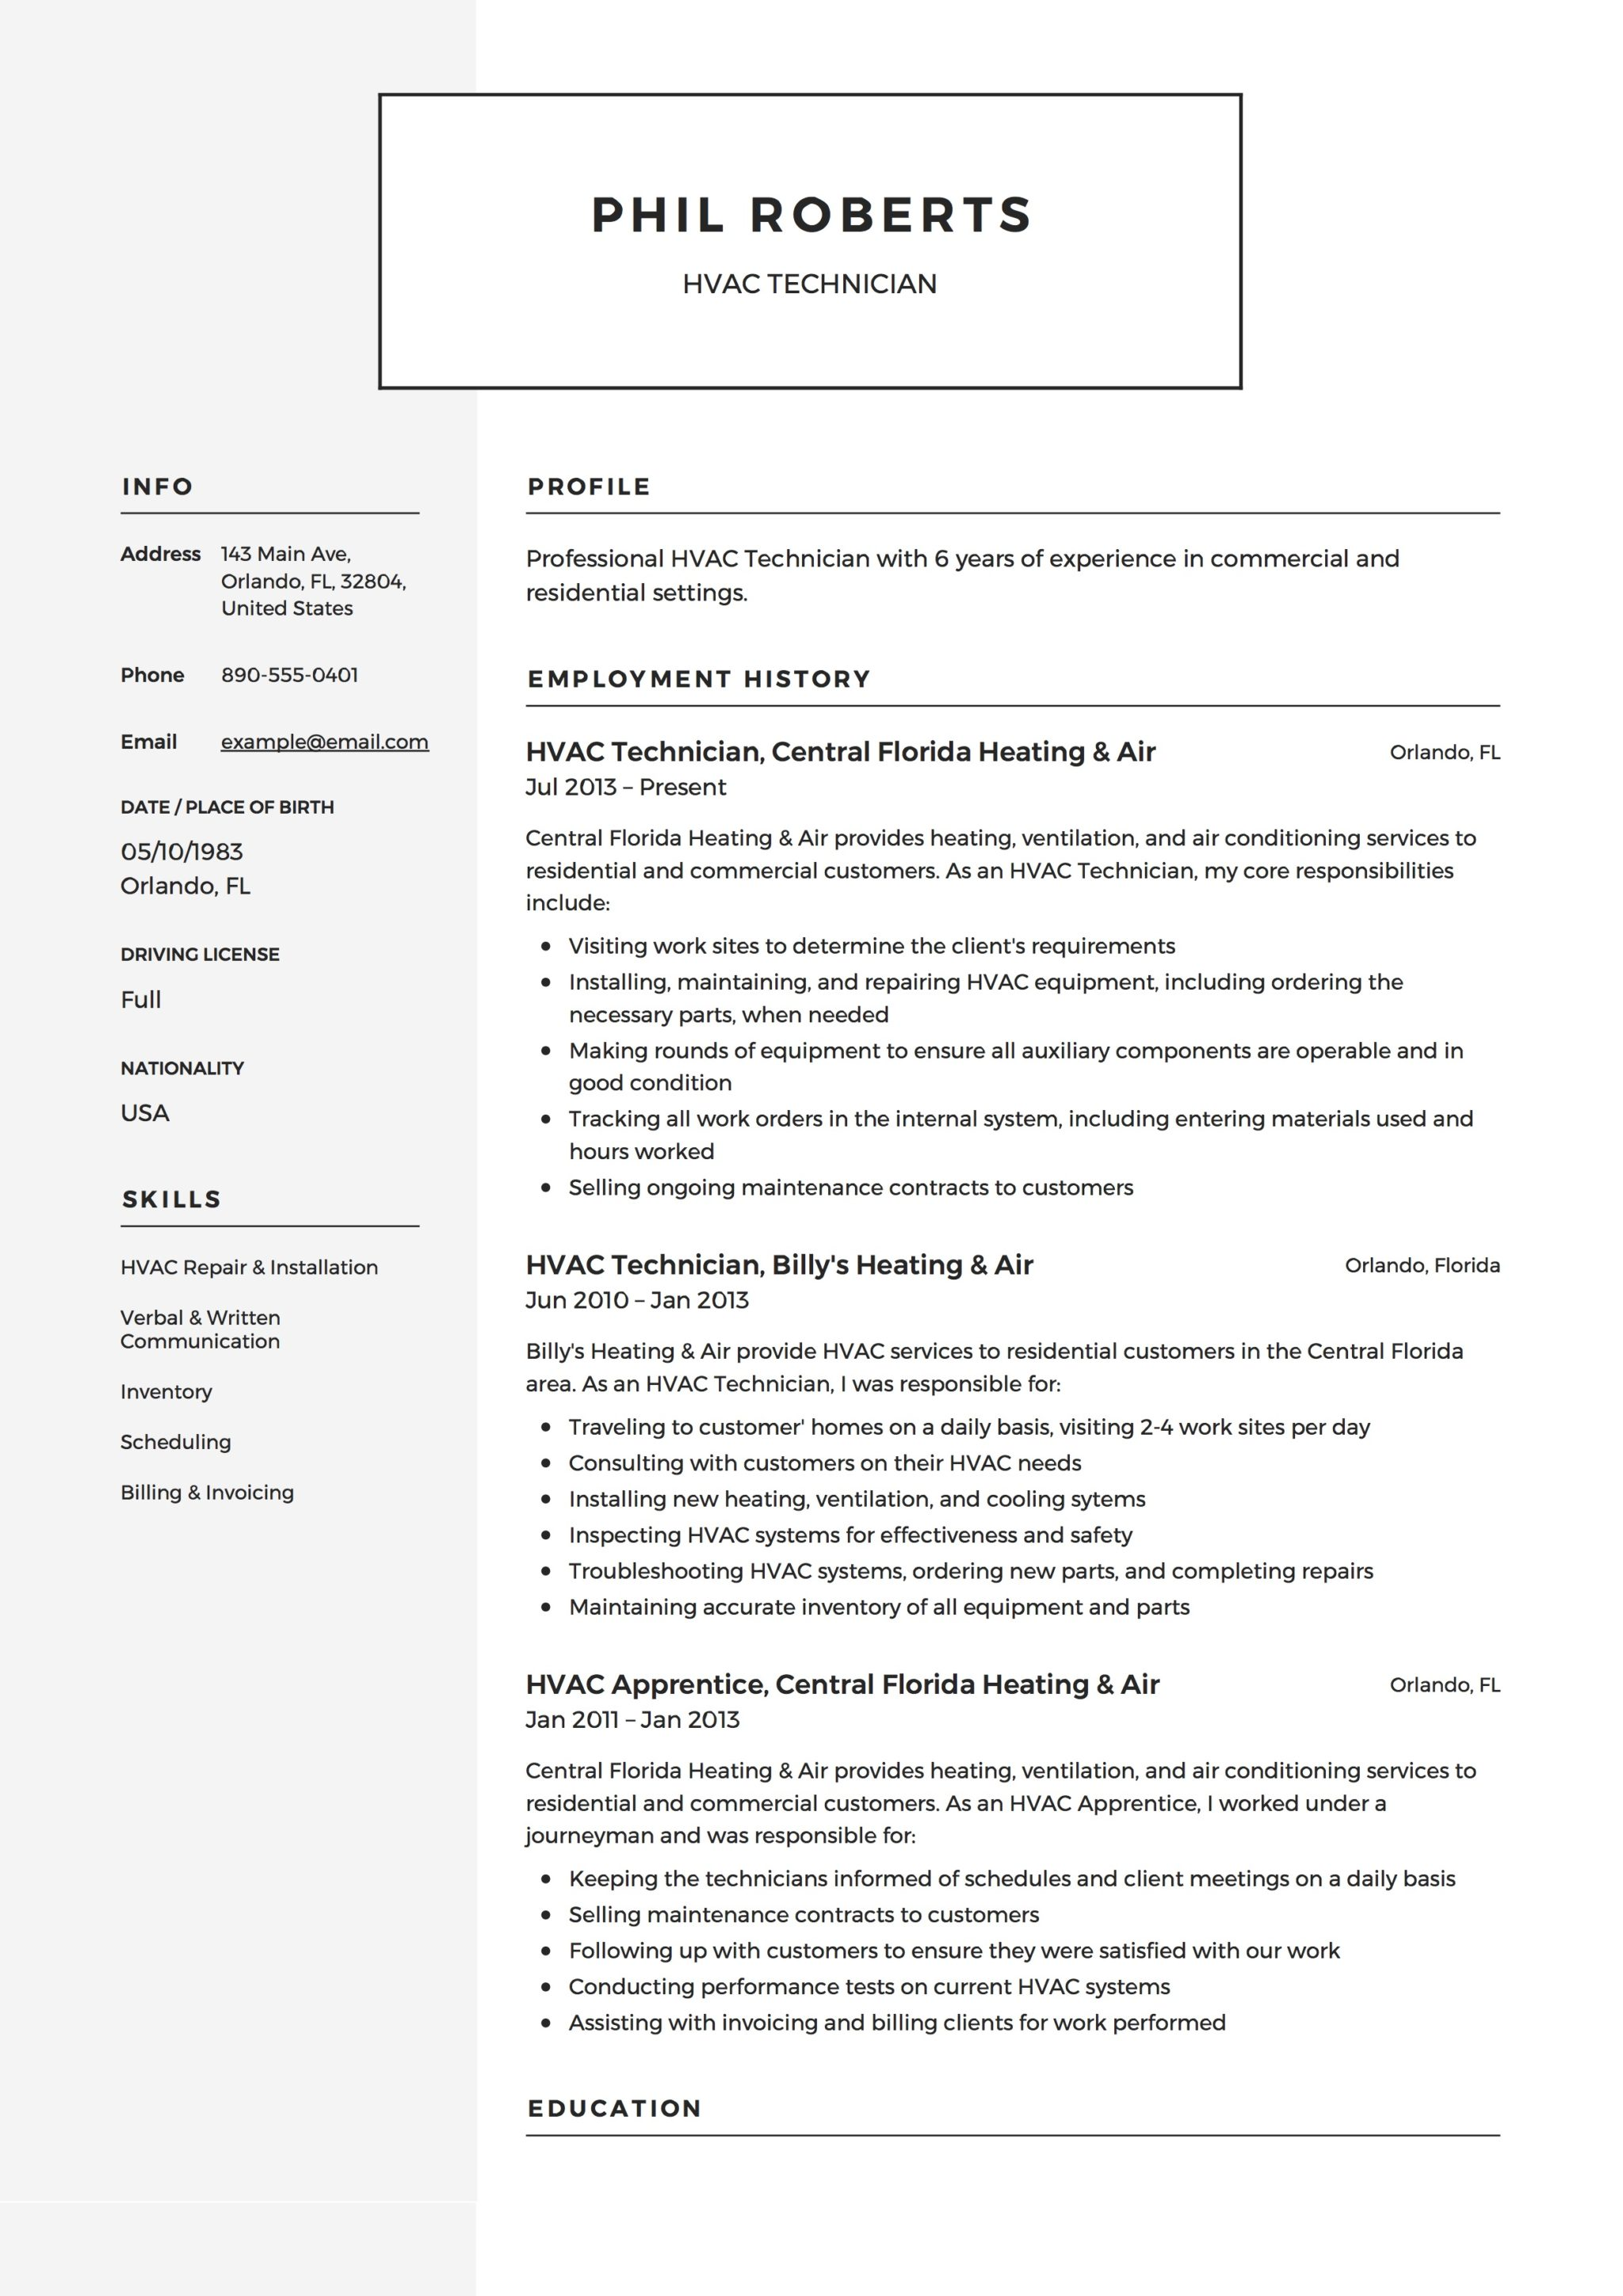 12 Free HVAC Technician Resume Samples ResumeVikingcom